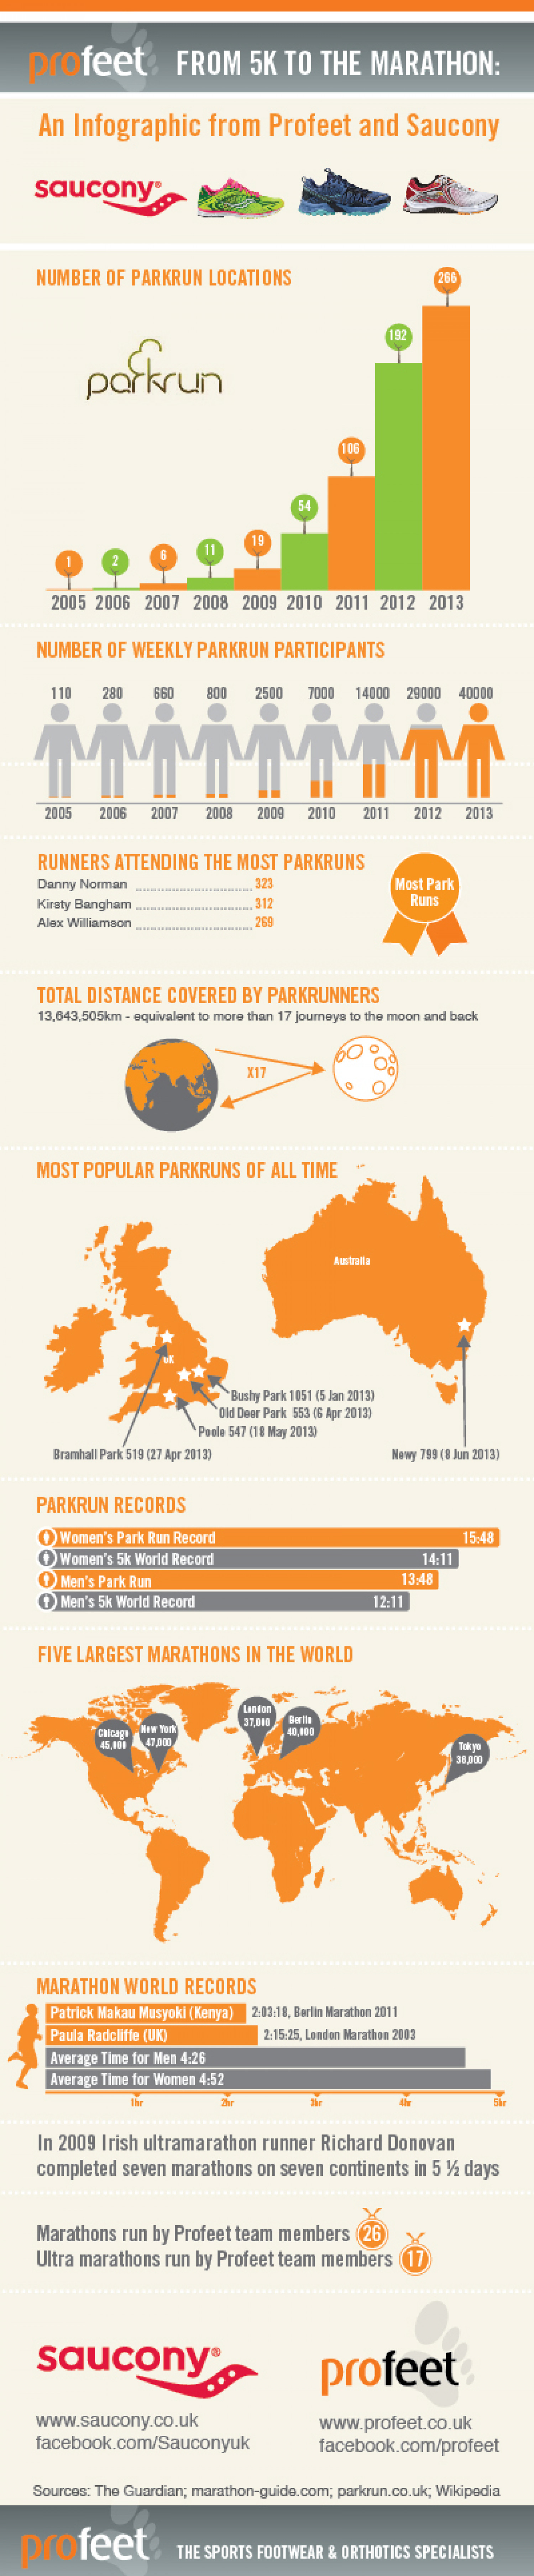 From 5k to the Marathon Infographic